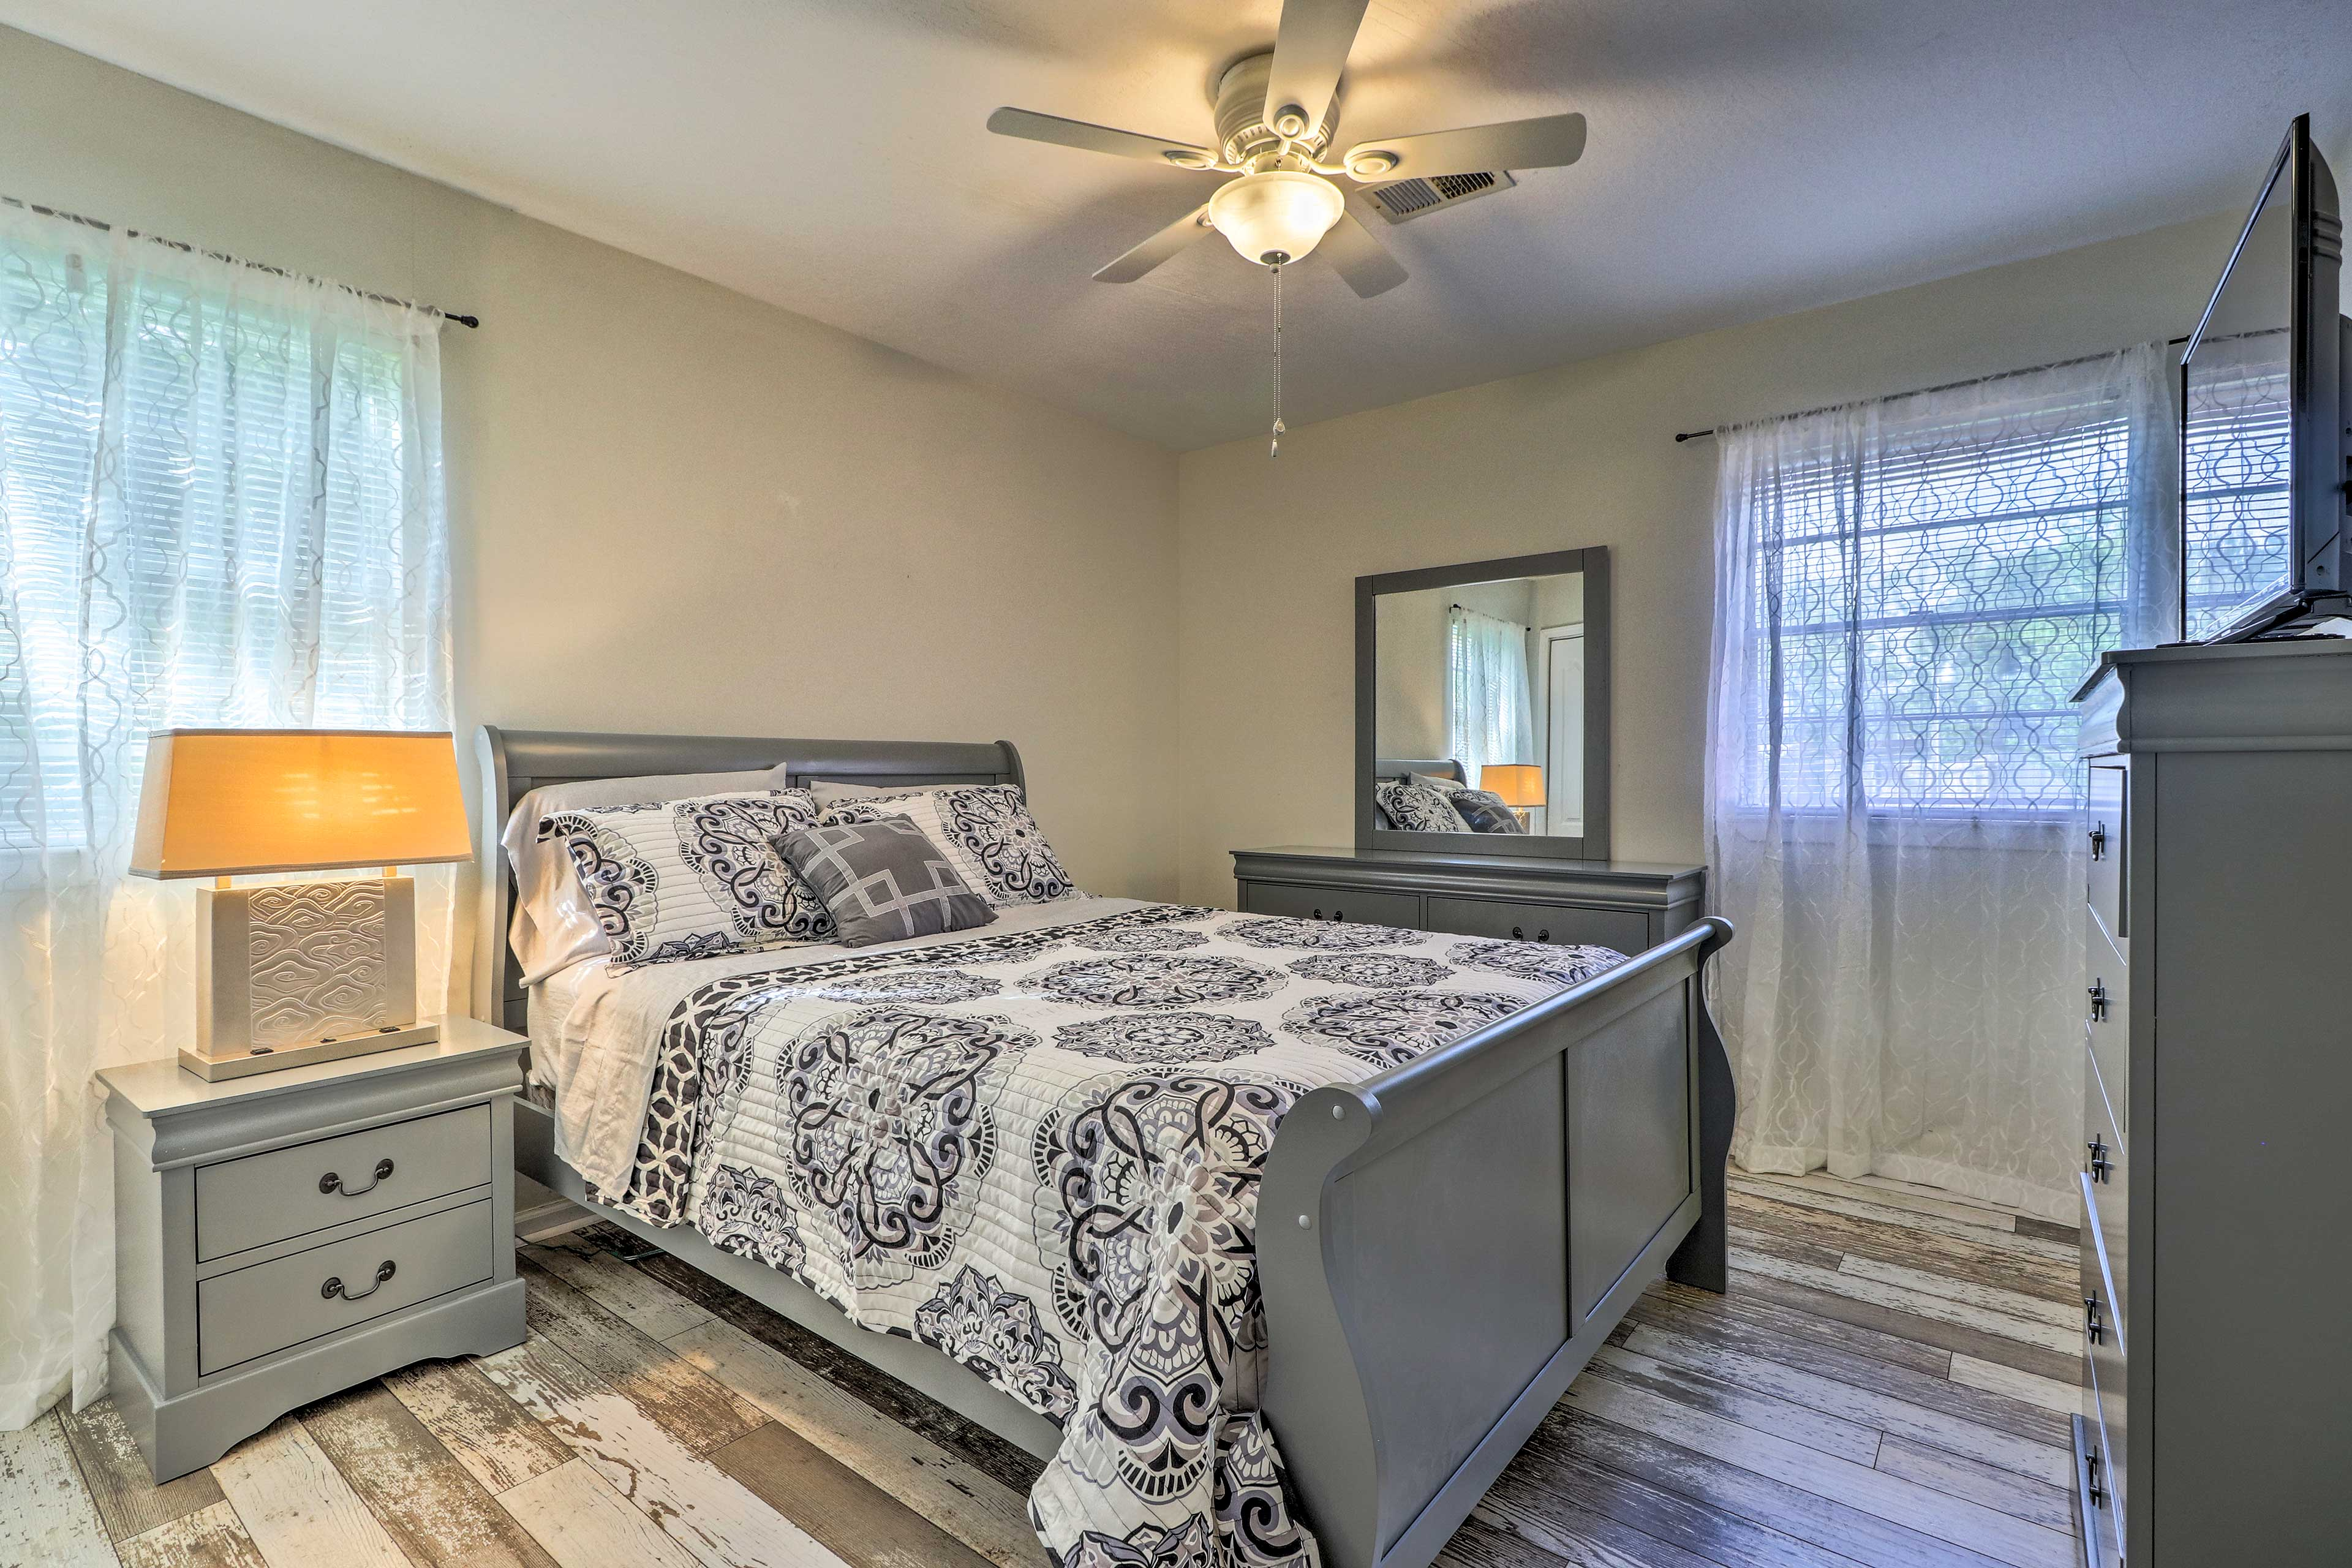 The master bedroom features lovely grey furniture & a matching bedspread.